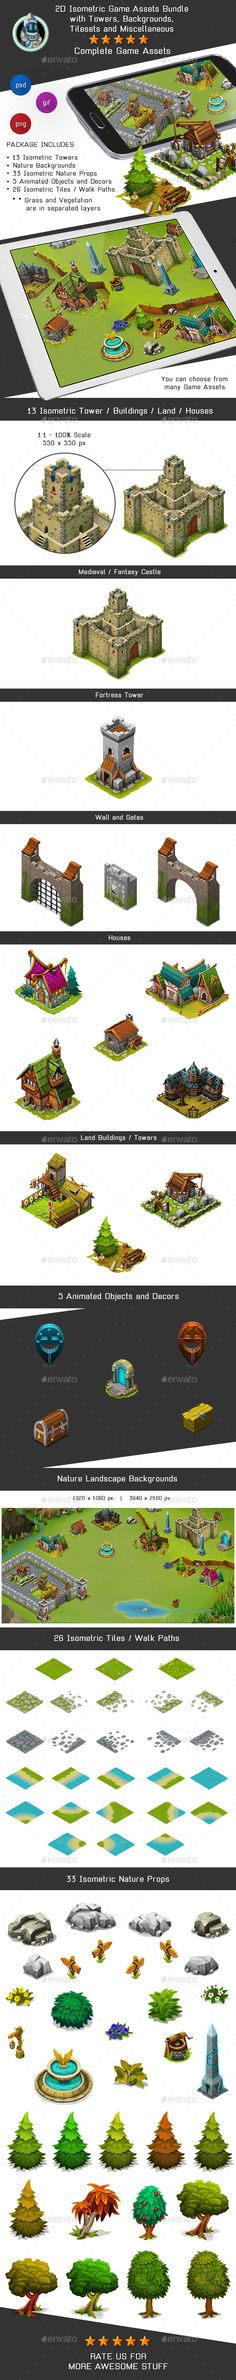 Isometric Game Kit 2 of 3 - Towers, Background, Tilesets & more Download herE: https://graphicriver.net/item/isometric-game-kit-2-of-3-towers-background-tilesets-more/17197844?ref=KlitVogli